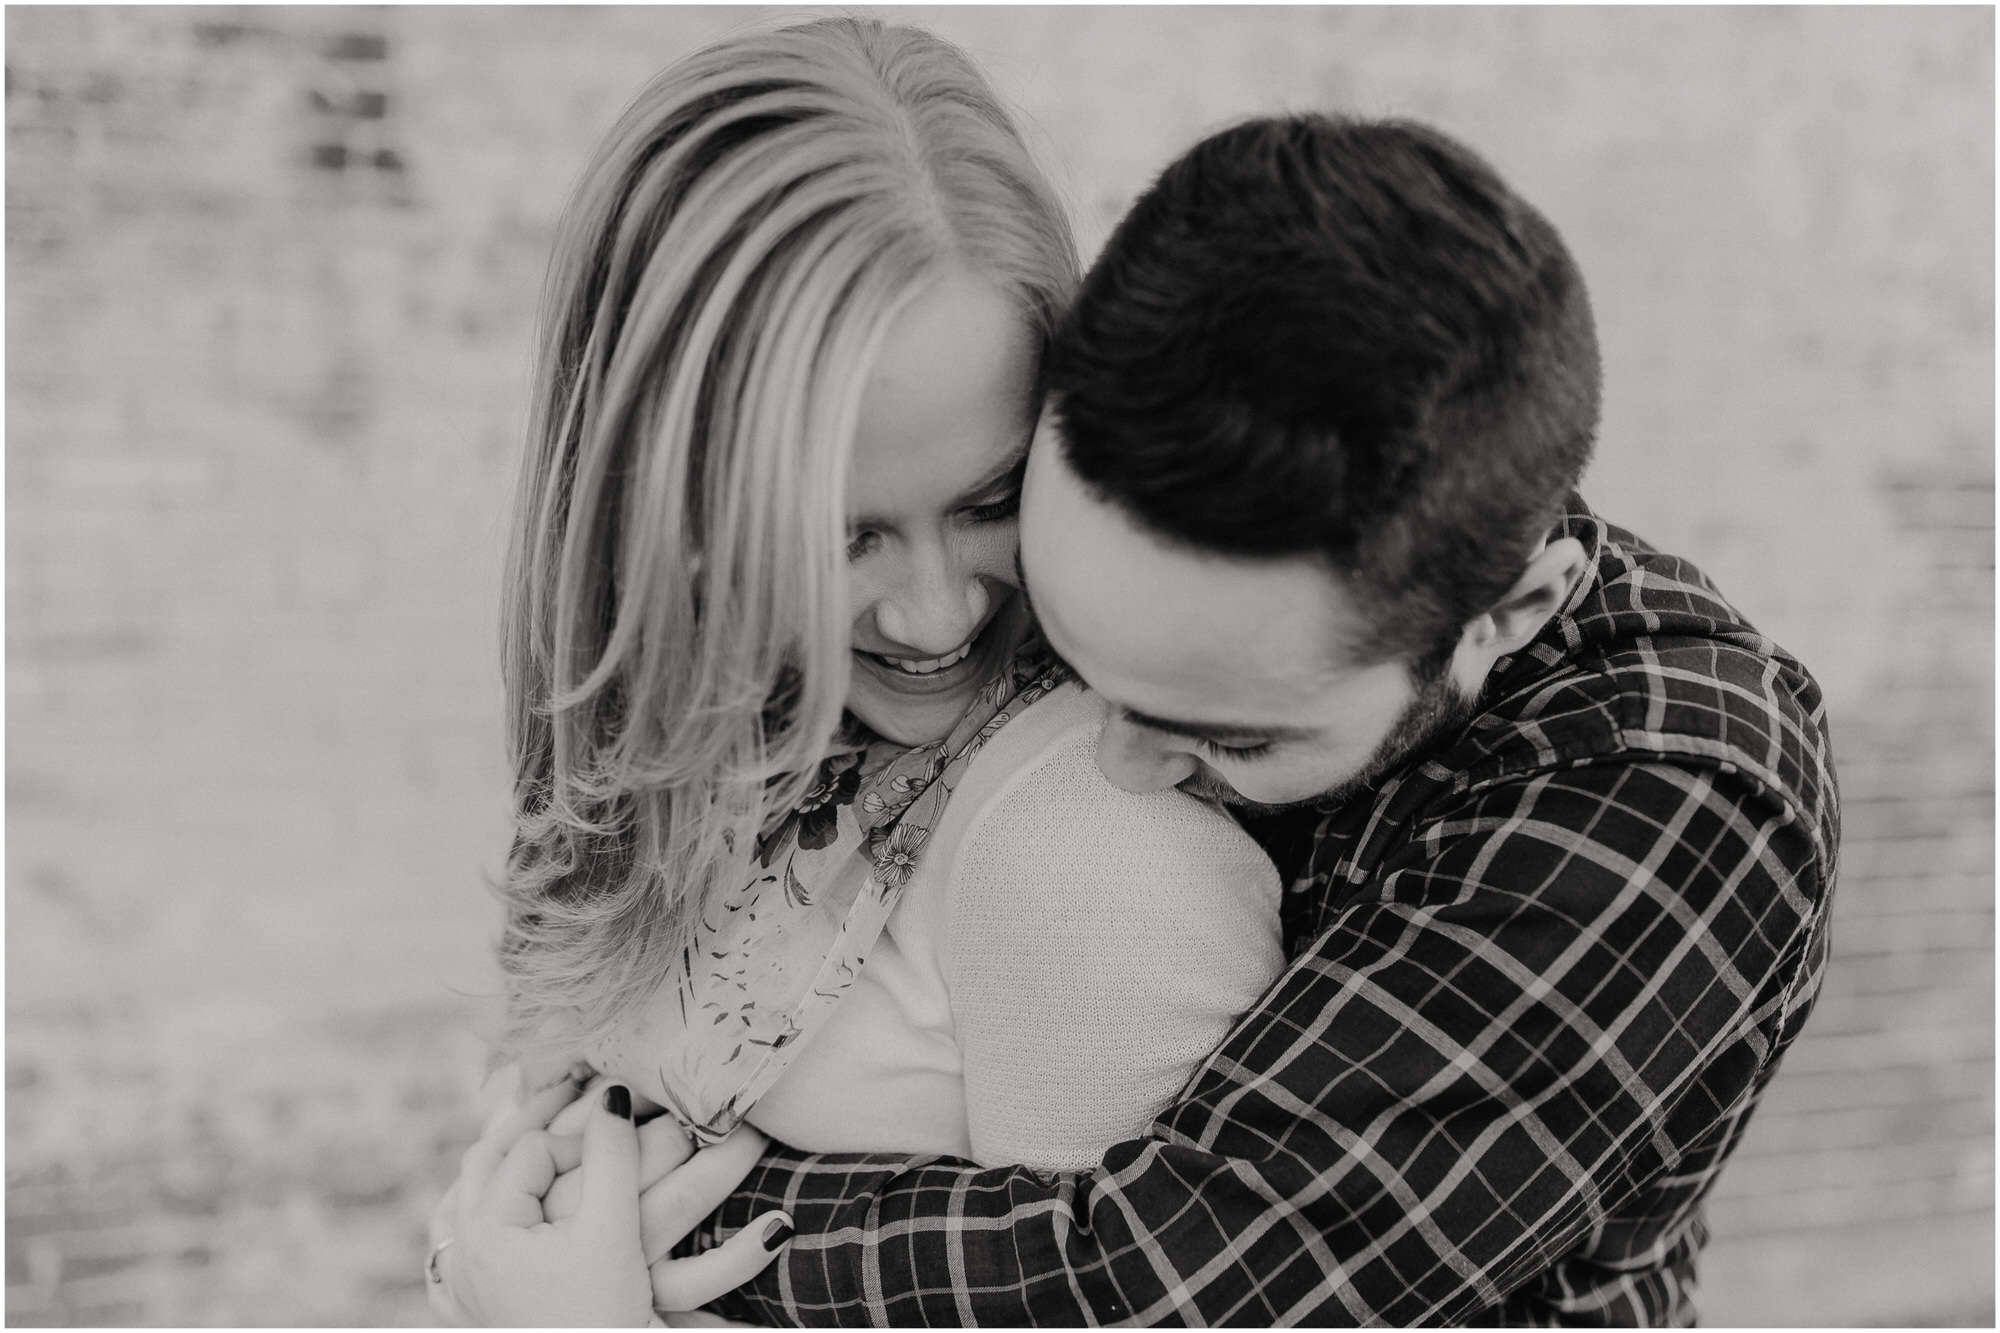 Man holds his fiancee close and kisses her shoulder for the engagement photos